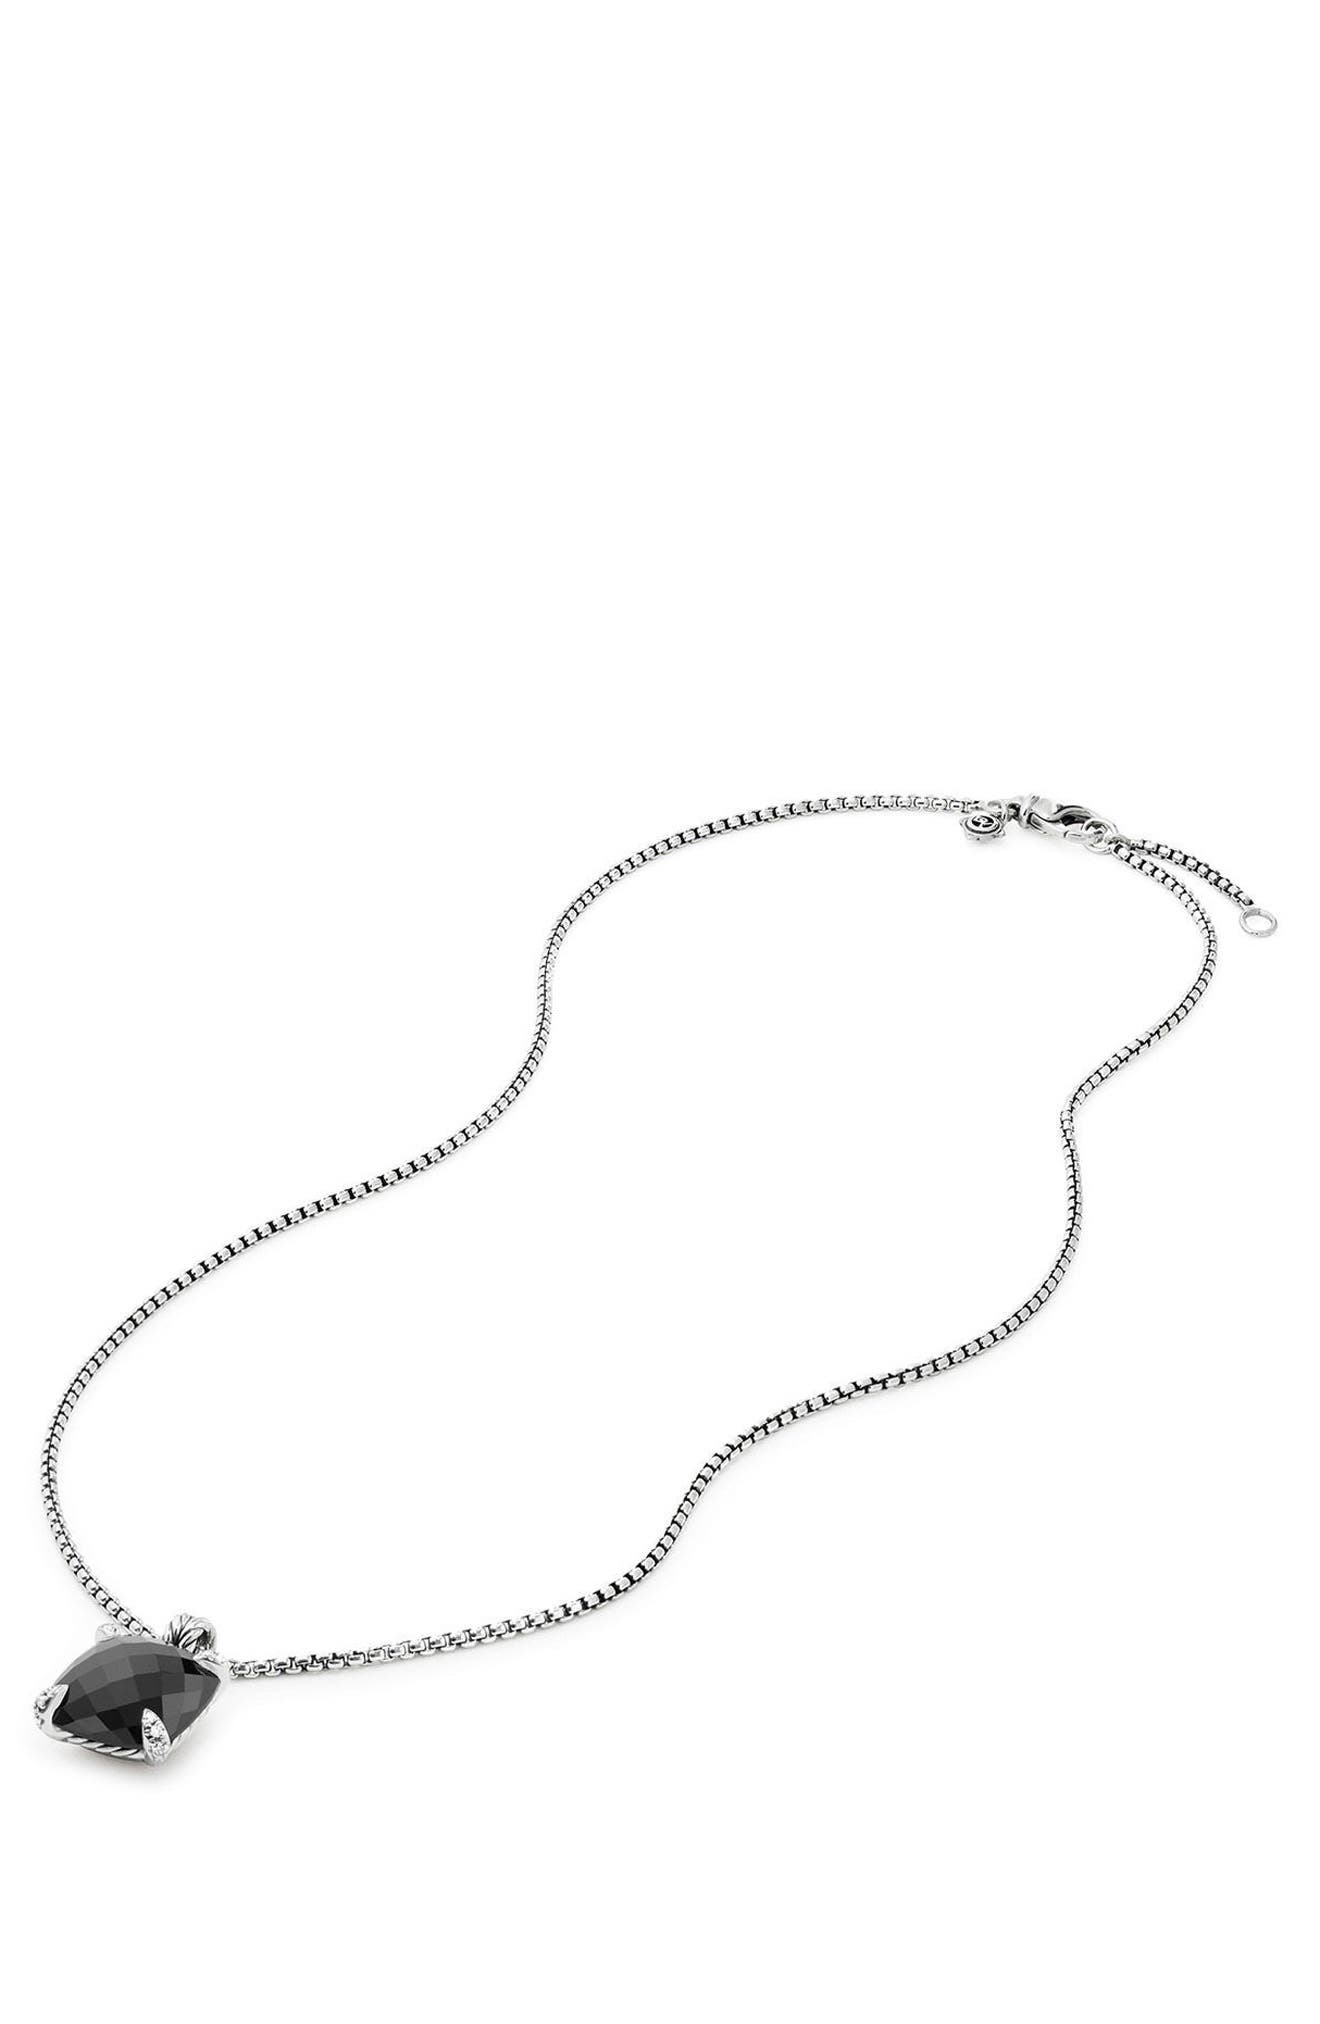 david yurman ch226telaine pendant necklace with diamonds